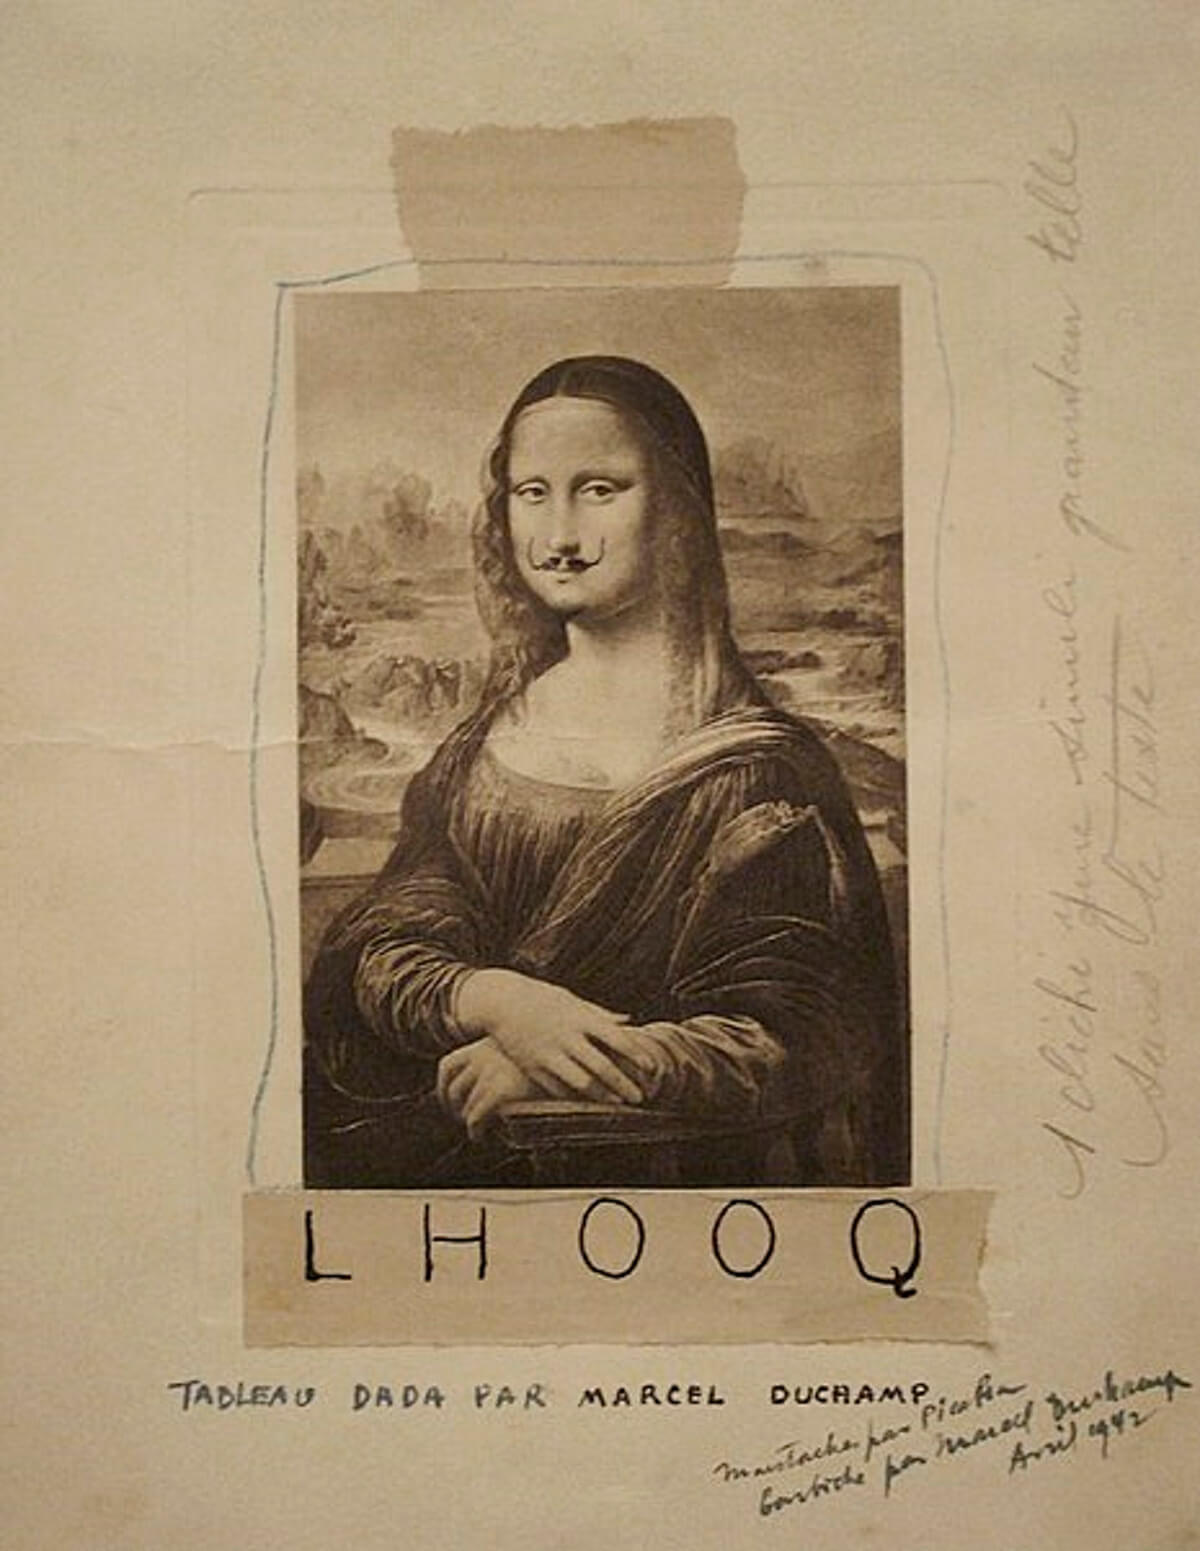 Mona Lisa with a moustache (LHOOQ) by Marcel Duchamp | STIRworld